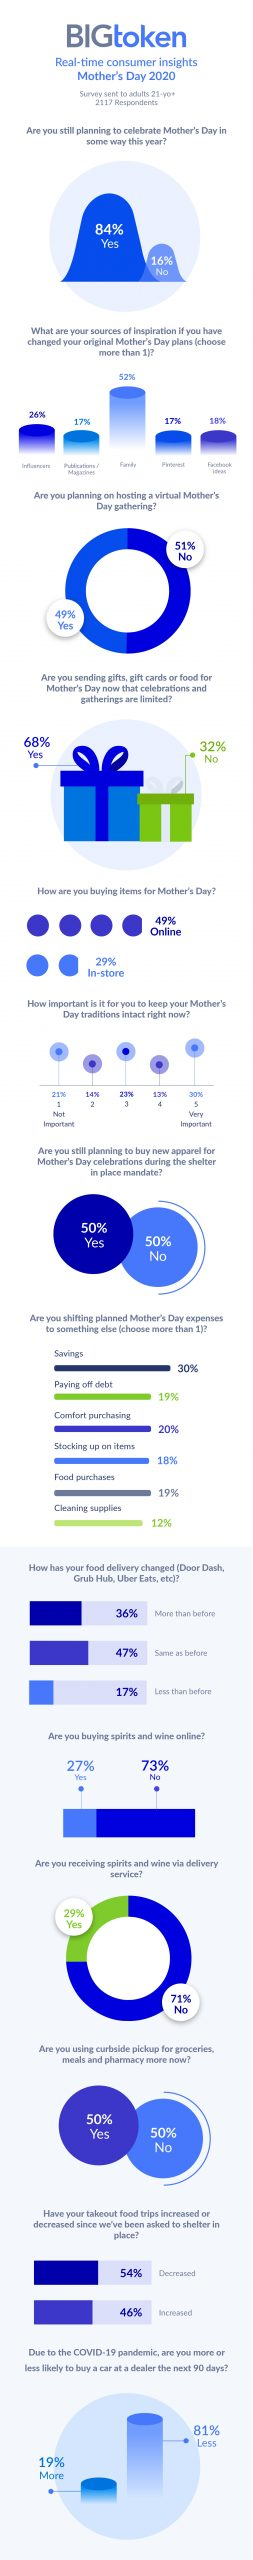 Consumers Focus on Homemade and Heartfelt This Mother's Day